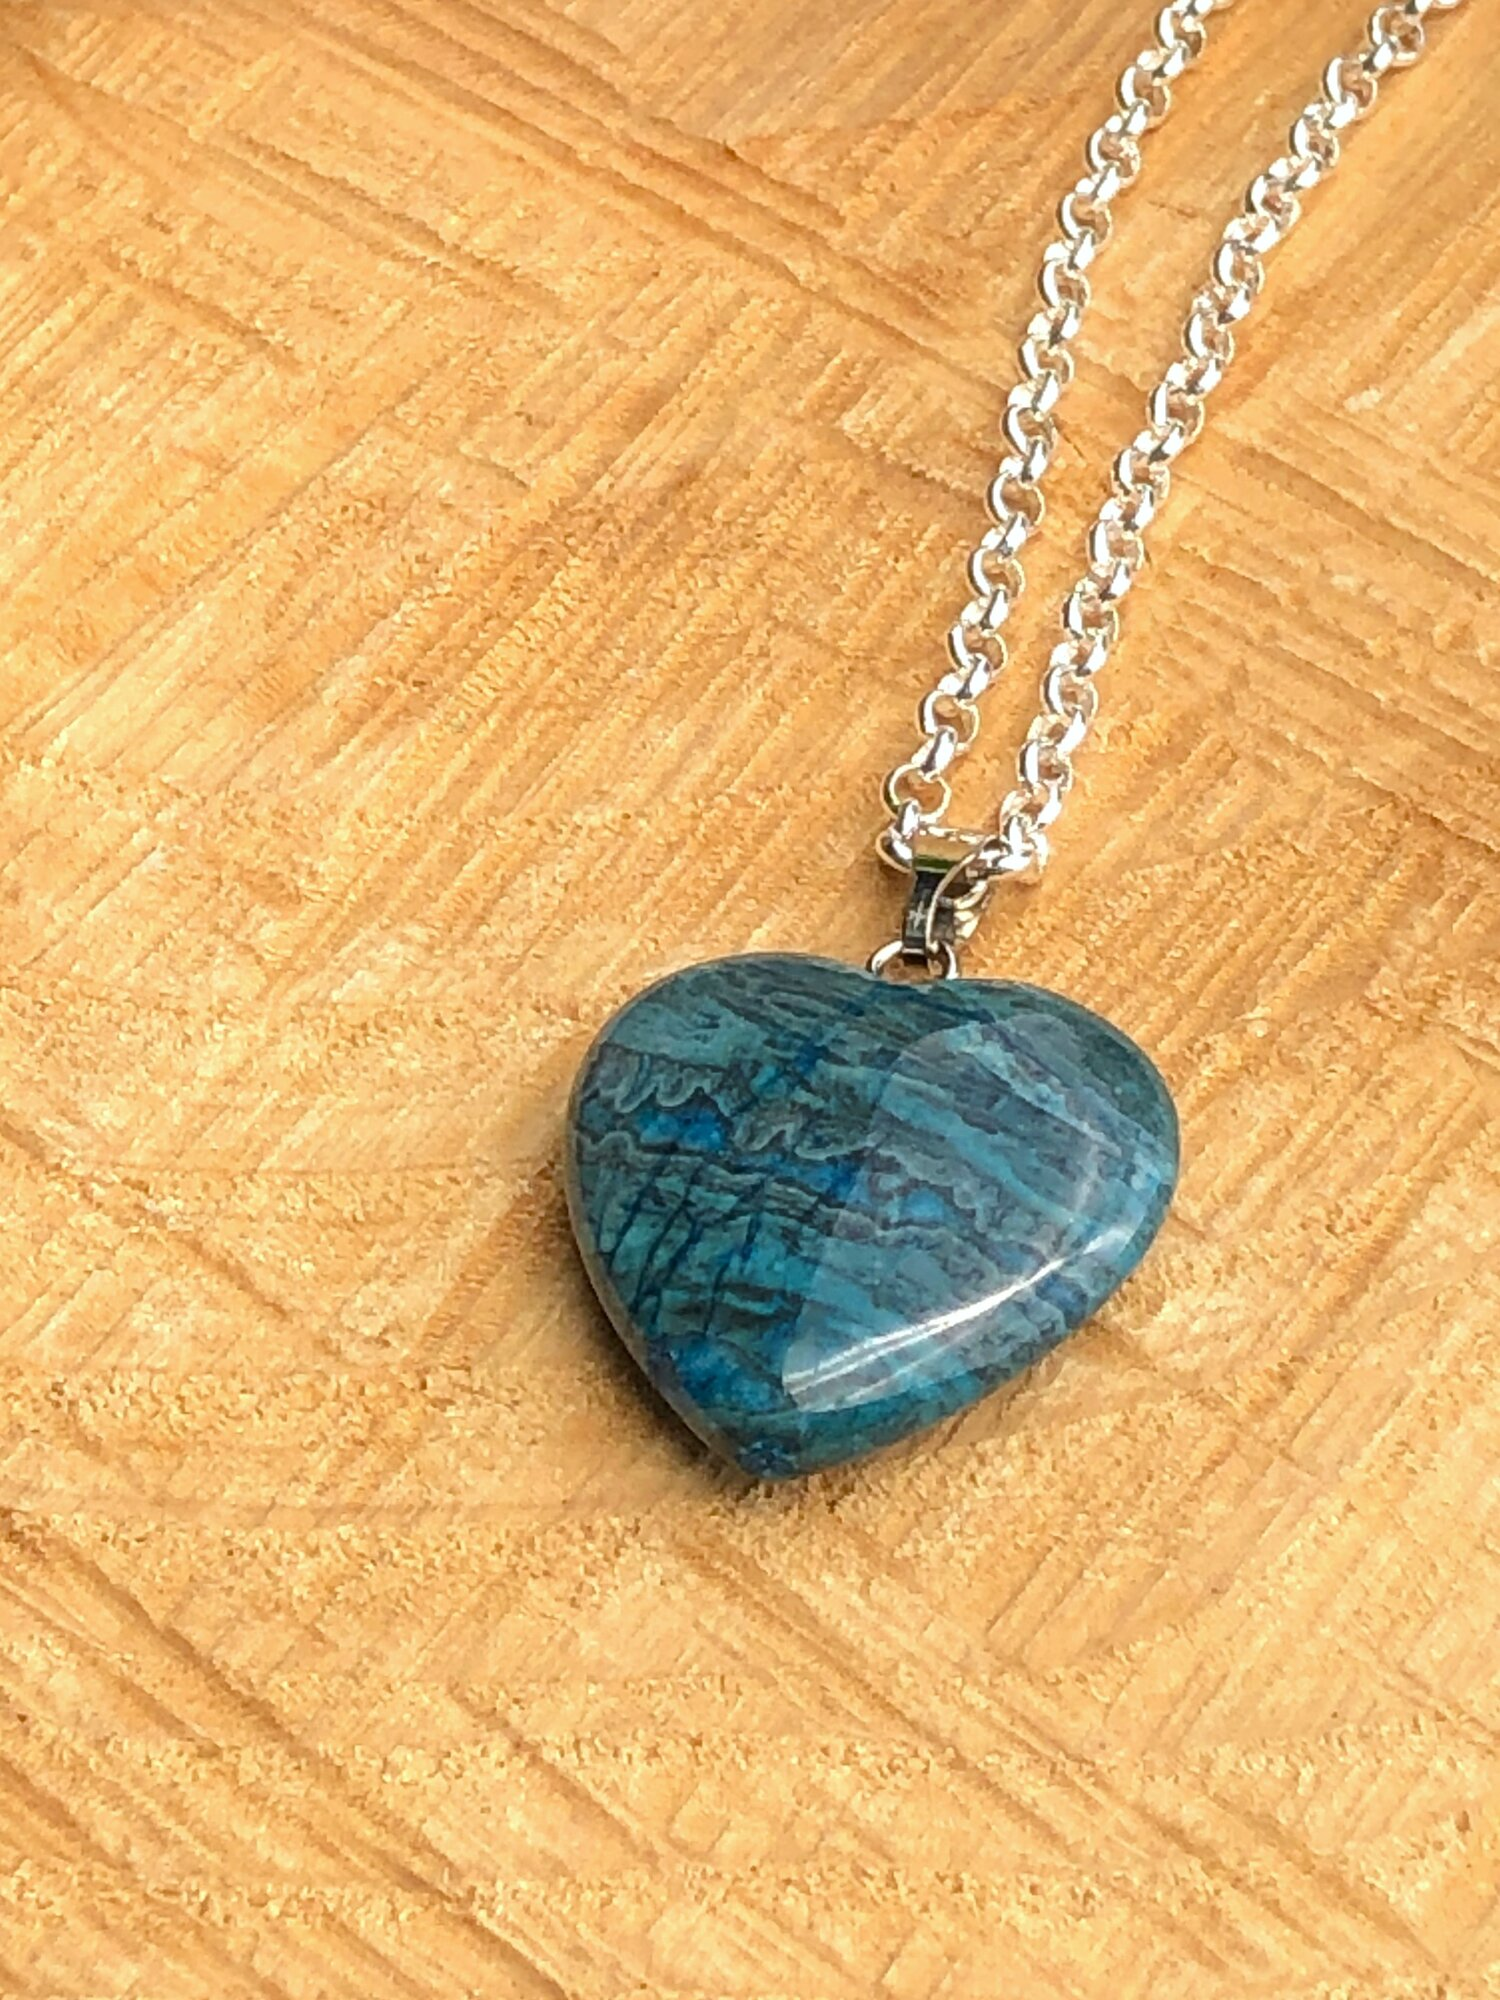 Crazy Lace Blue Agate Pendant,Laughter Crystal